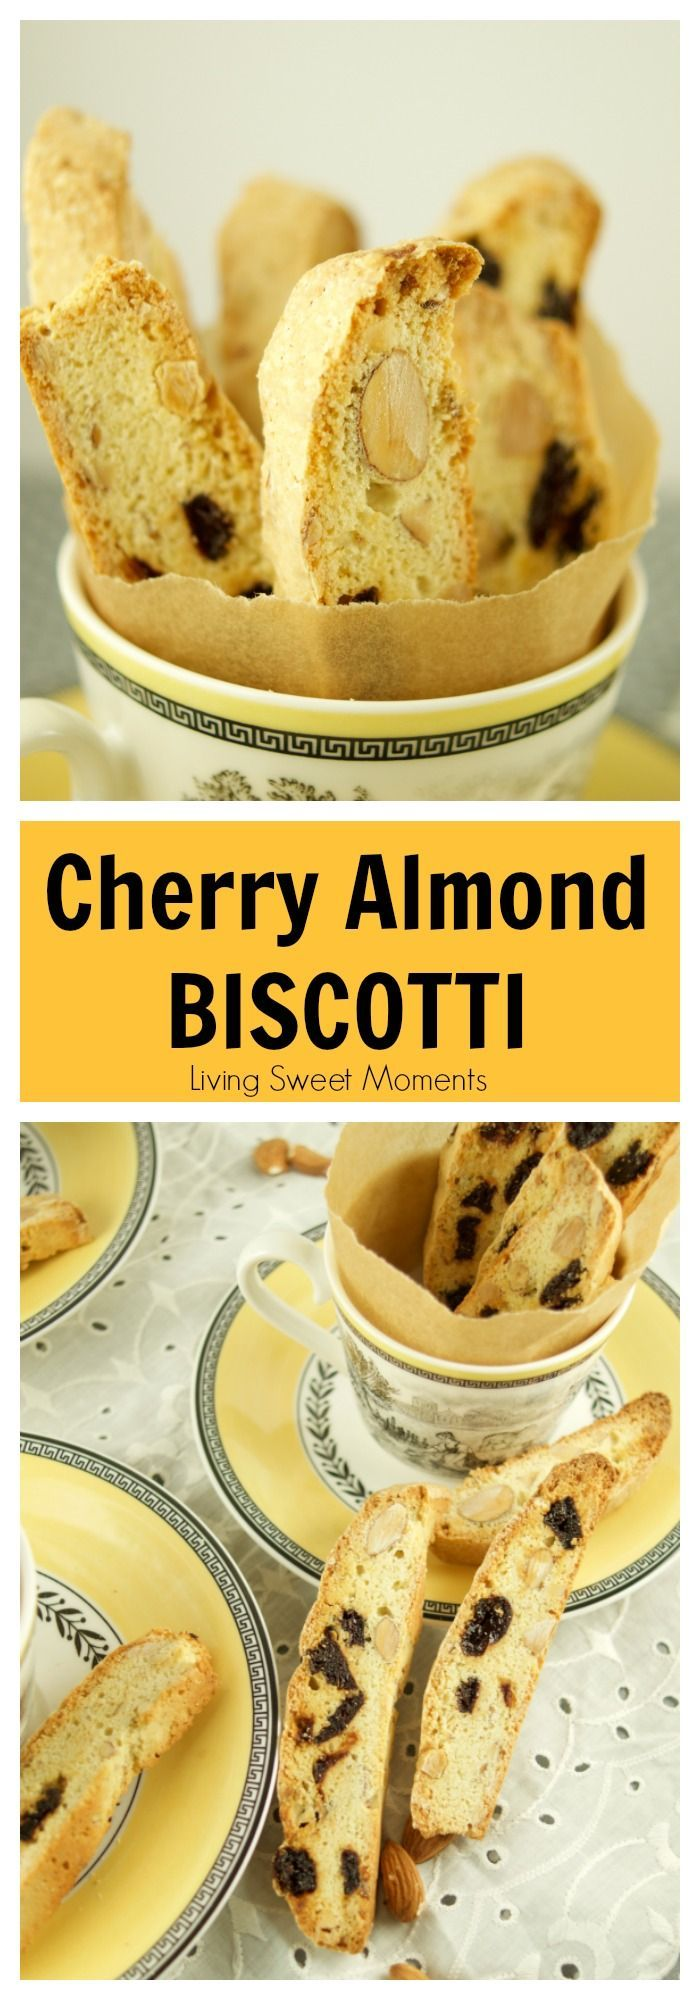 "These delectable Italian Cherry Almond Biscotti recipe (Cantucci) are the perfect cookies to dip in wine, coffee and hot cocoa for breakfast, snack or dessert. More on <a href=""http://livingsweetmoments.com/"" rel=""nofollow"" target=""_blank"">livingsweetmoment...</a> http://livingsweetmoments.com//cherry-almond-biscotti/?utm_content=buffer7cb5c&utm_medium=social&utm_source=pinterest.com&utm_campaign=buffer#_a5y_p=5308047"